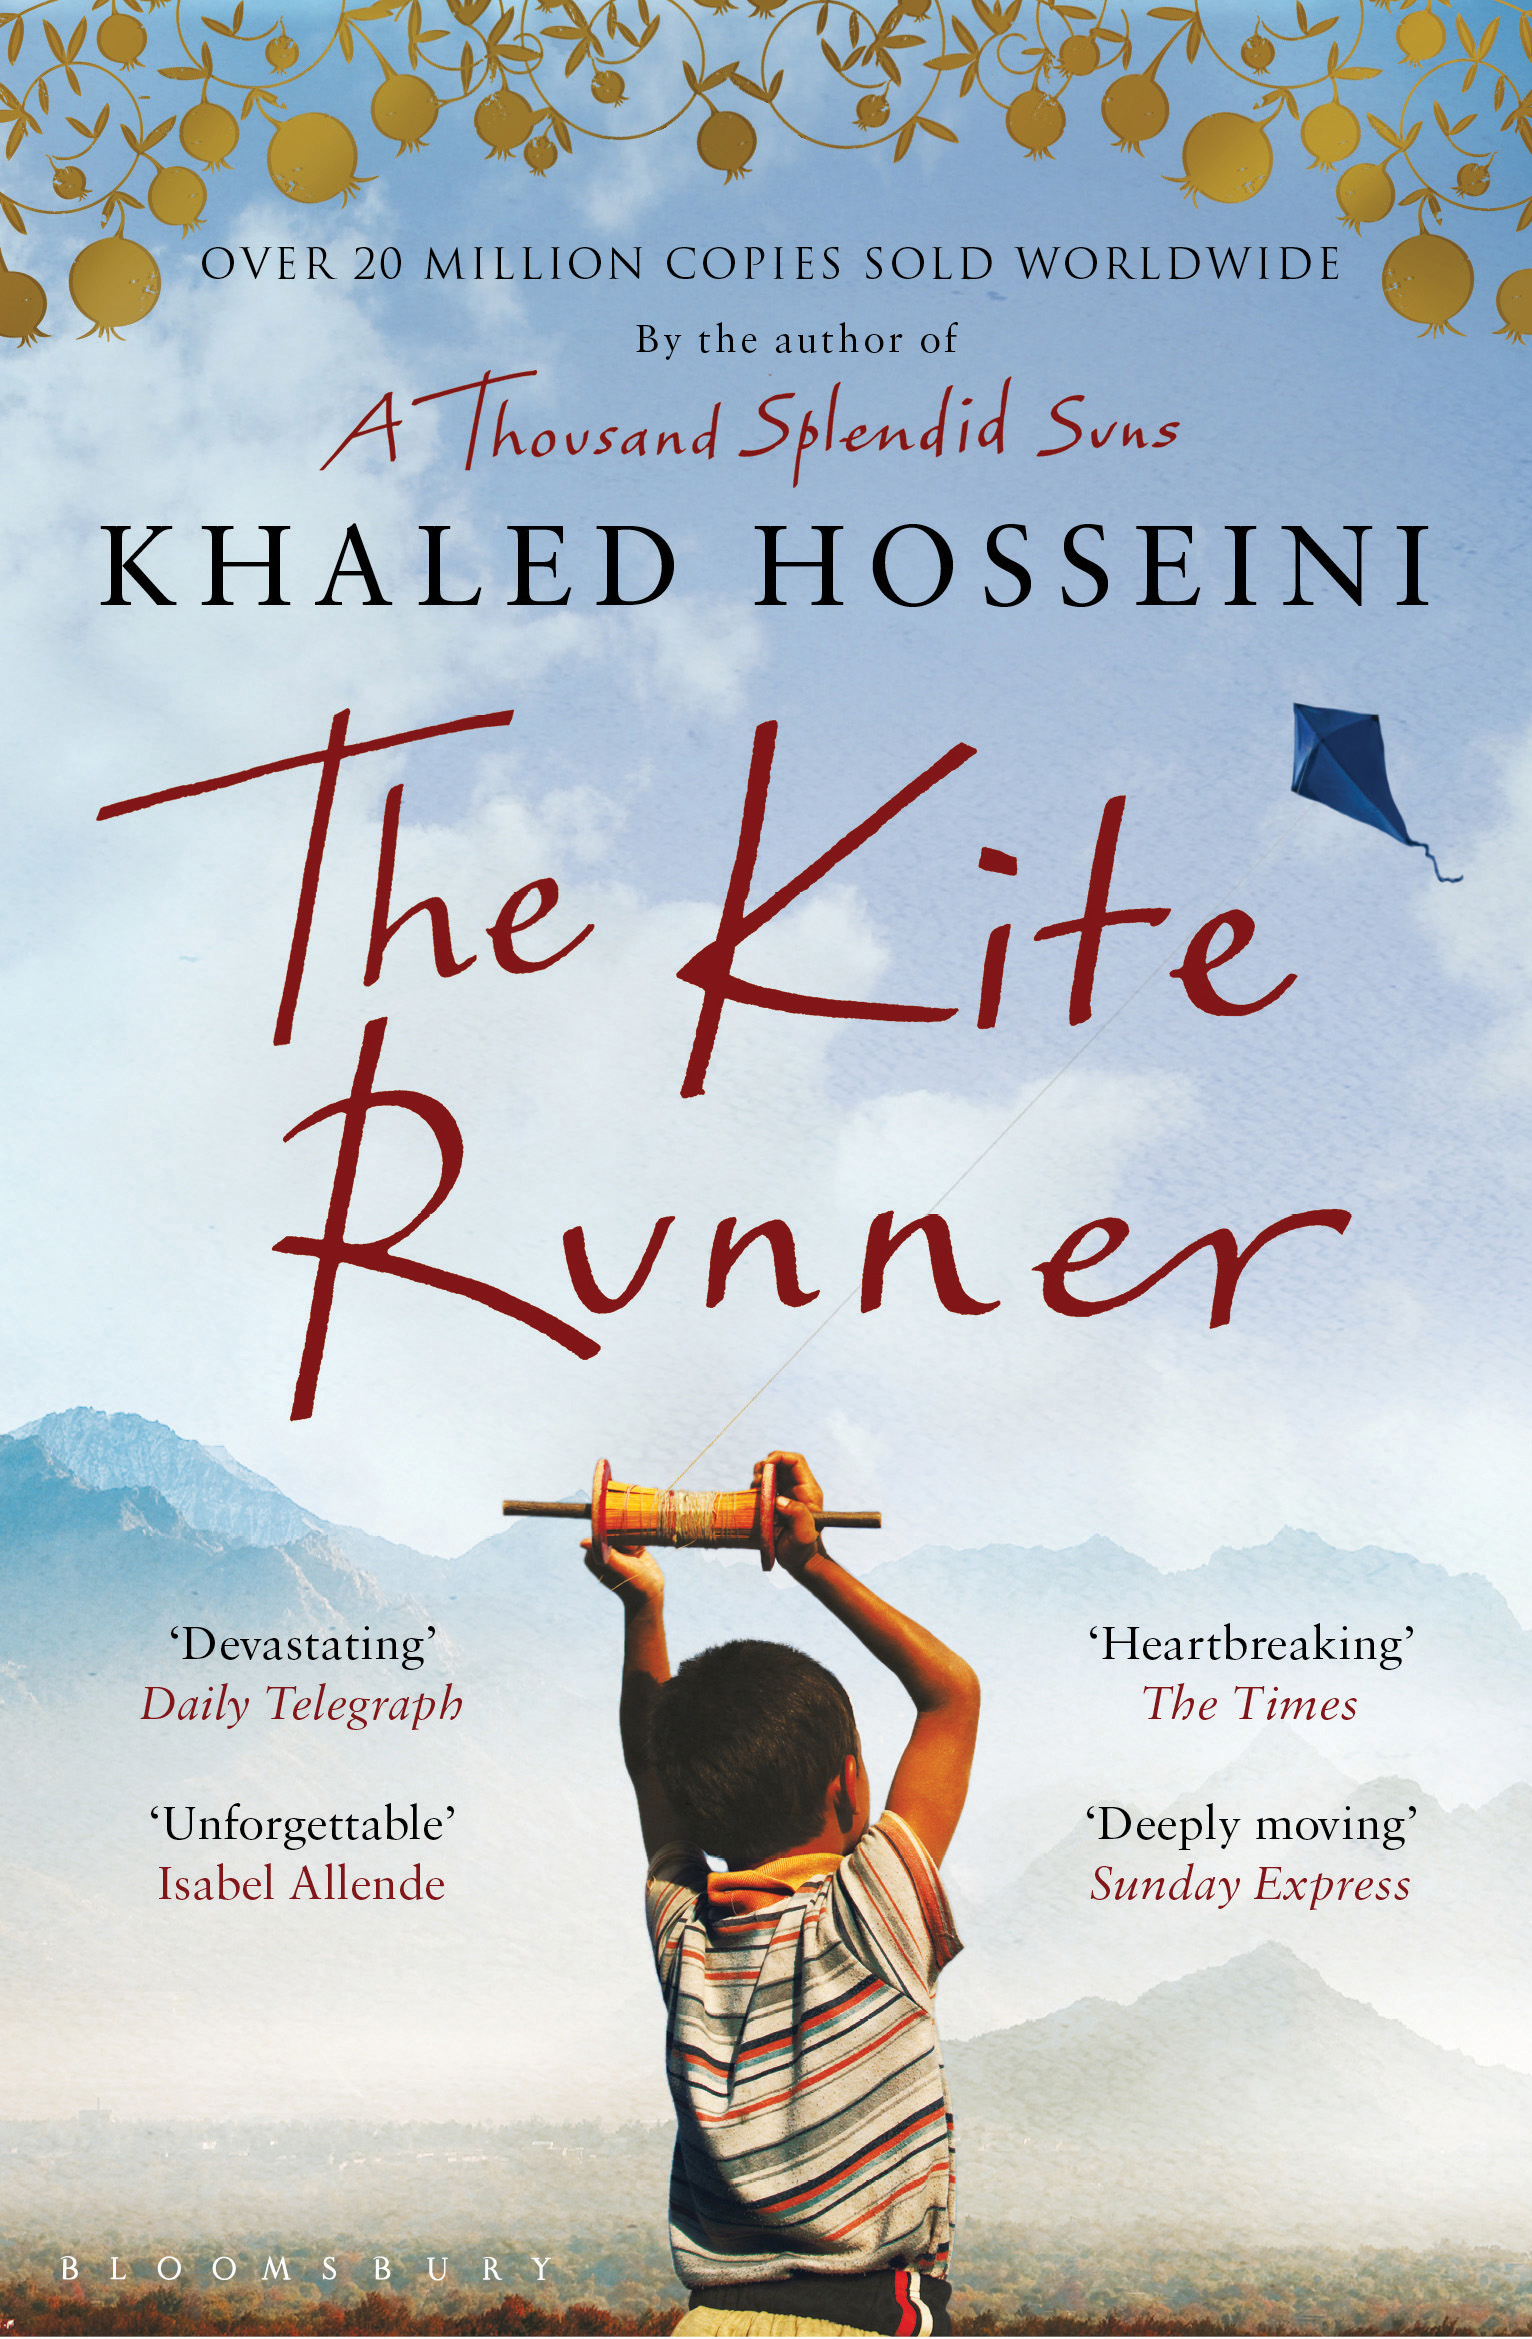 the kite runner khaled hosseini allen unwin cover